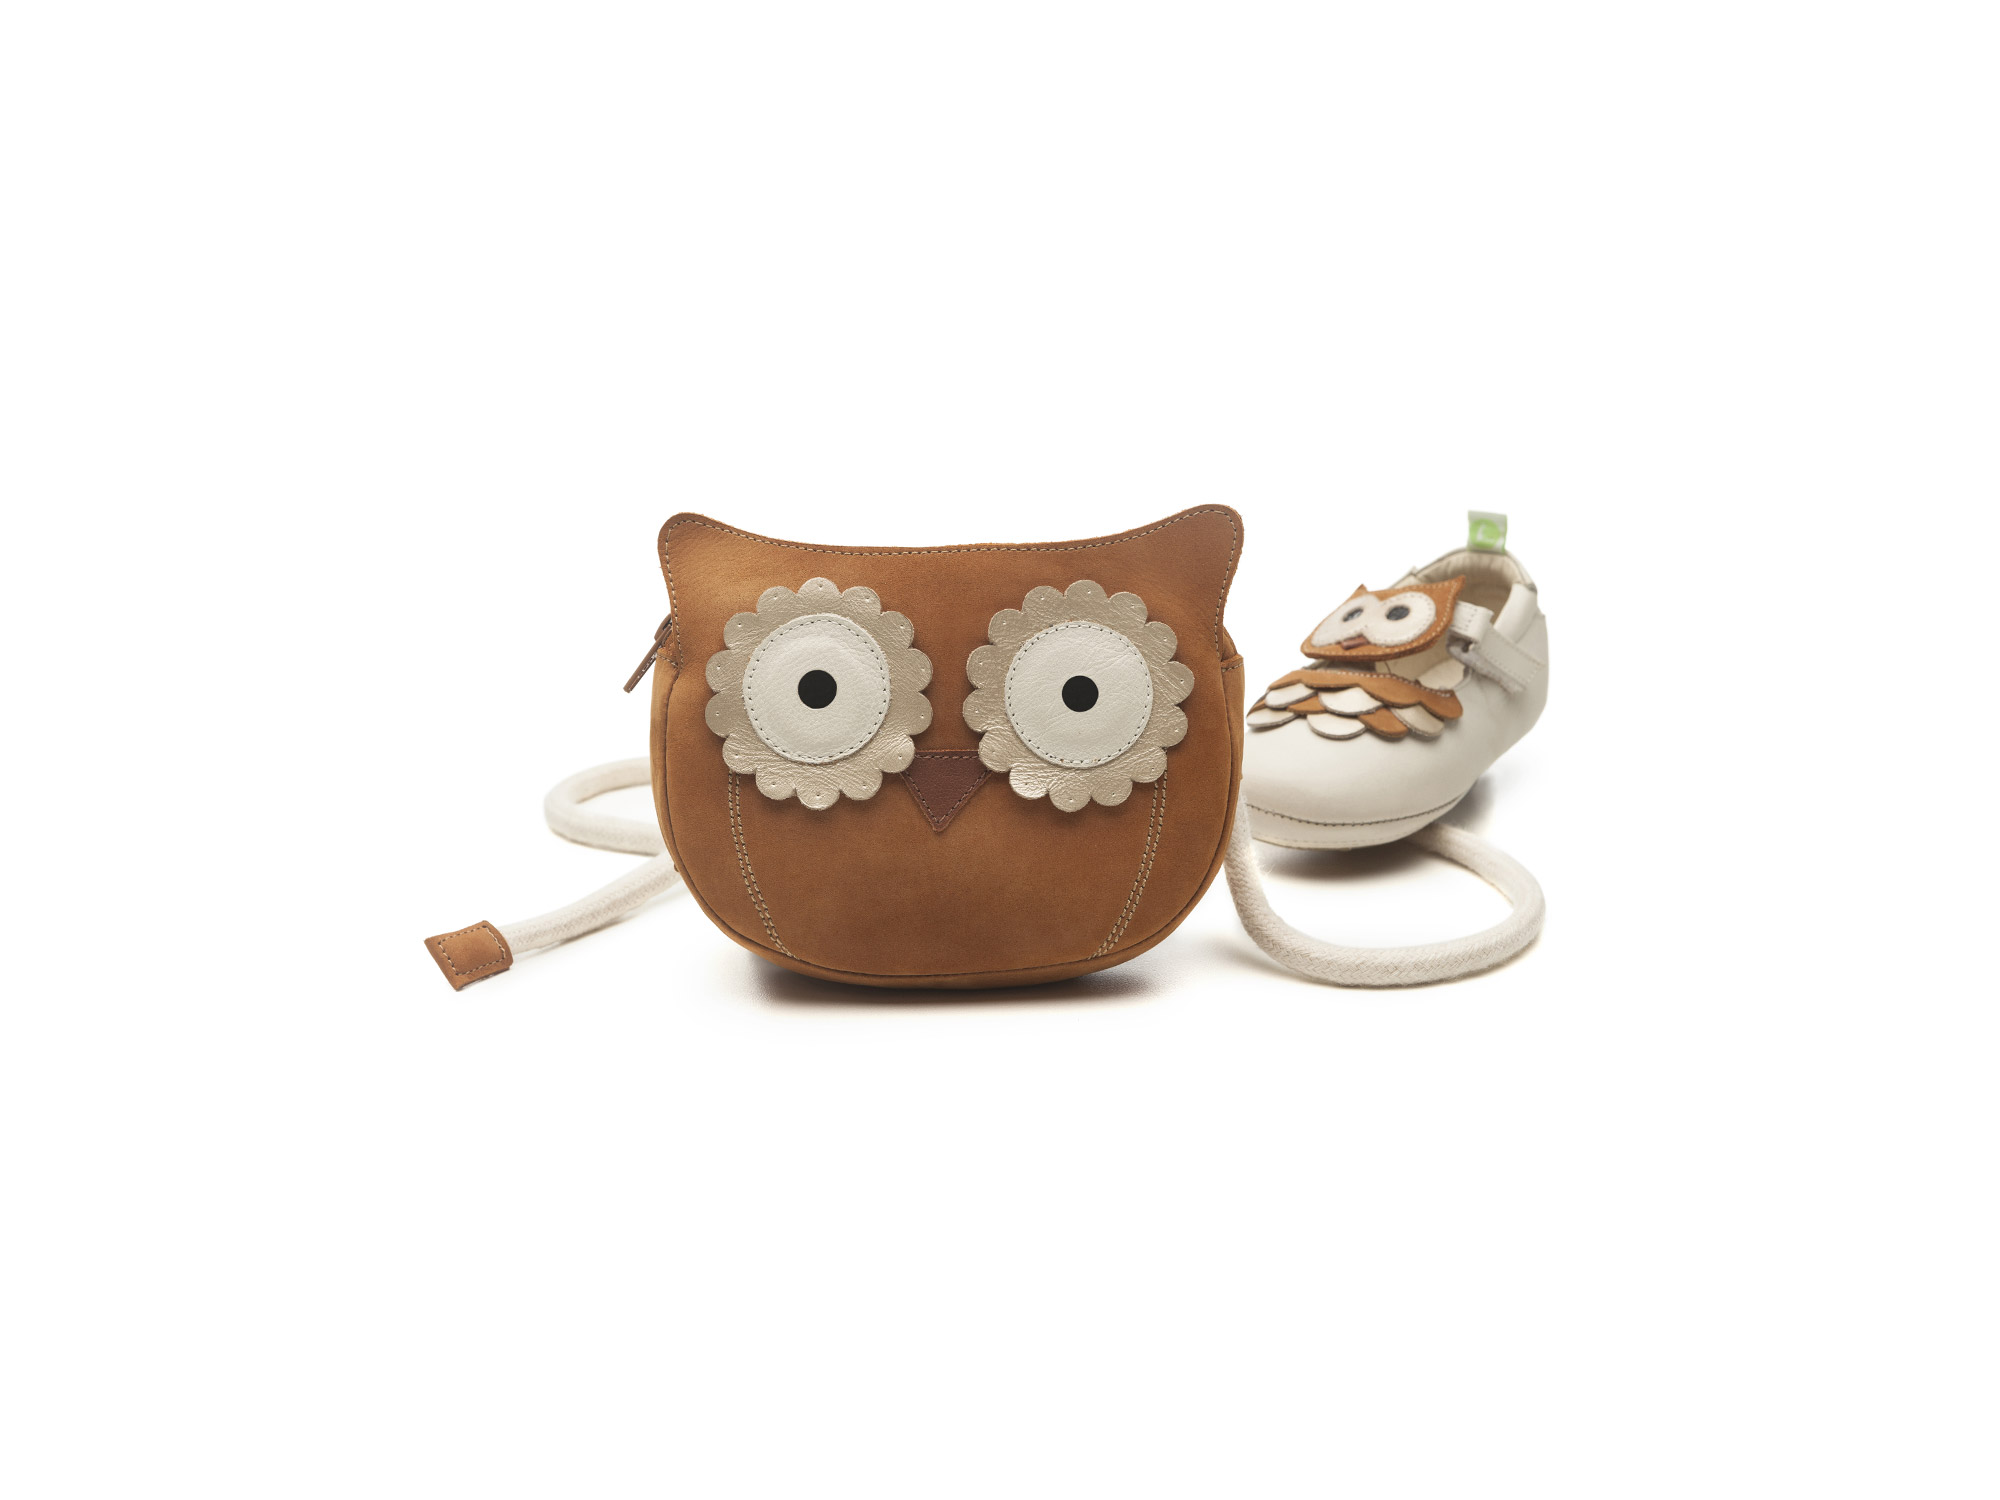 Handbag Bag Owl Ochre Baby for ages 0 to 2 years - 3